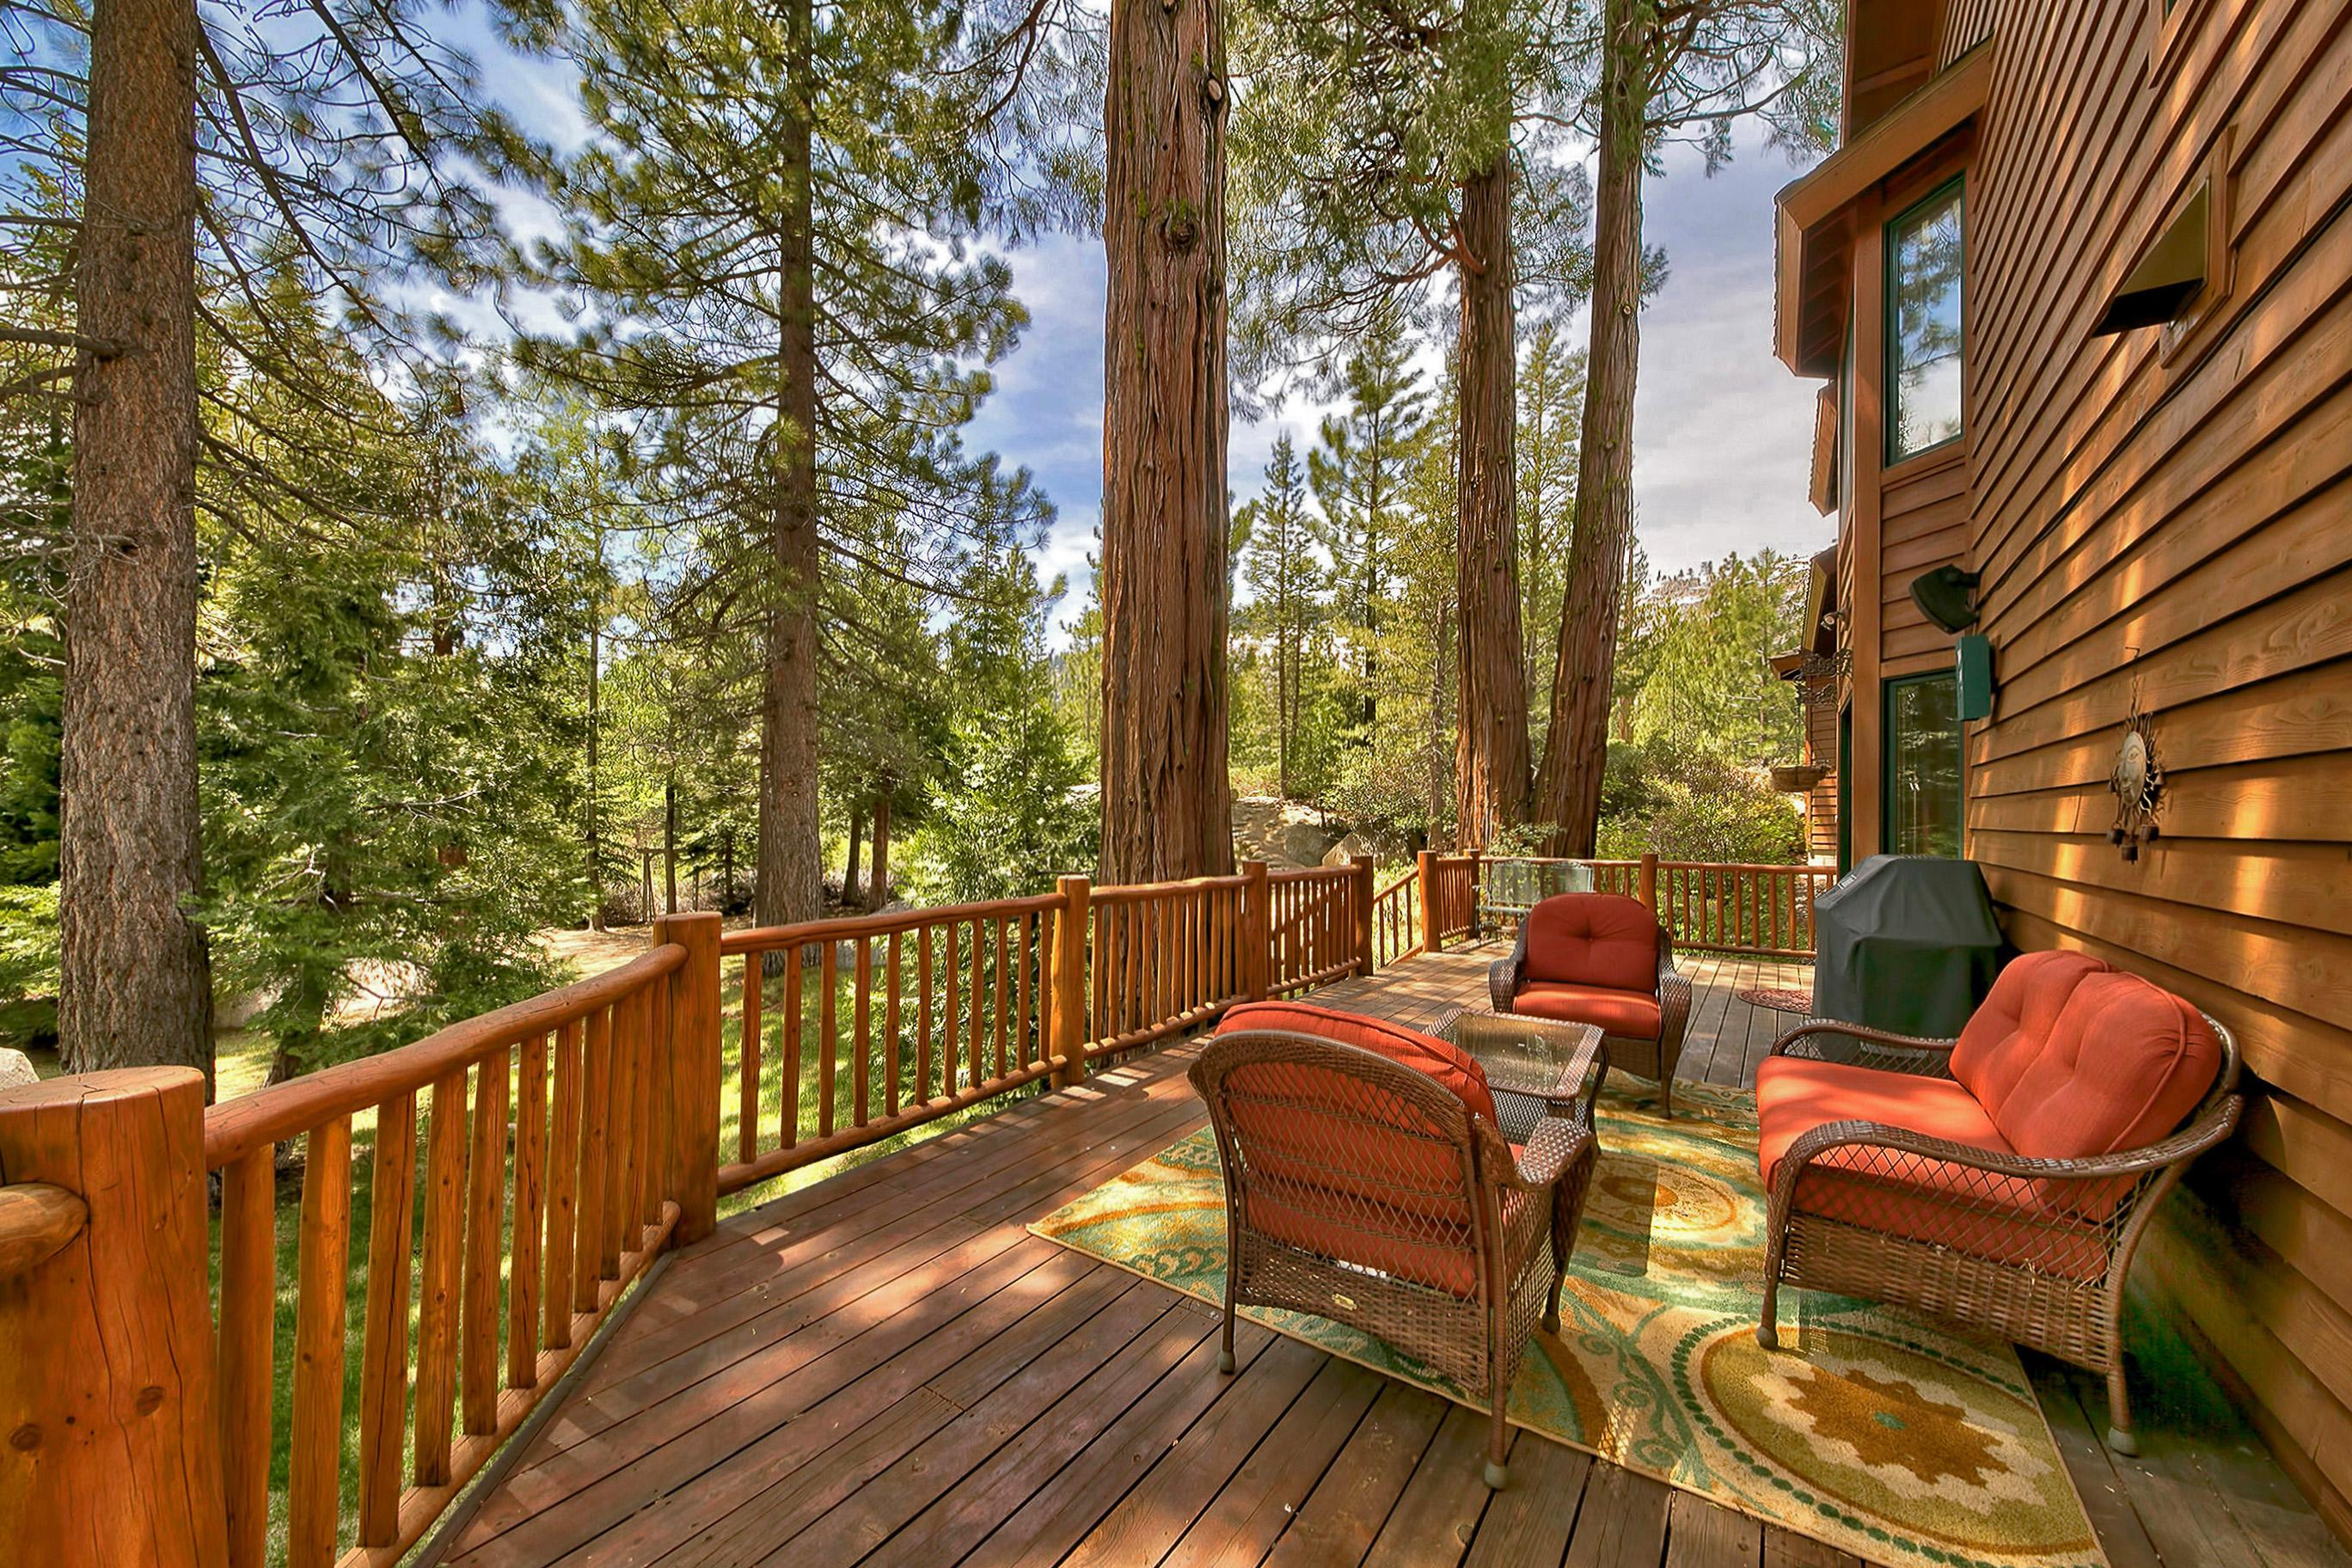 Entertain on the expansive furnished deck with wooded views.